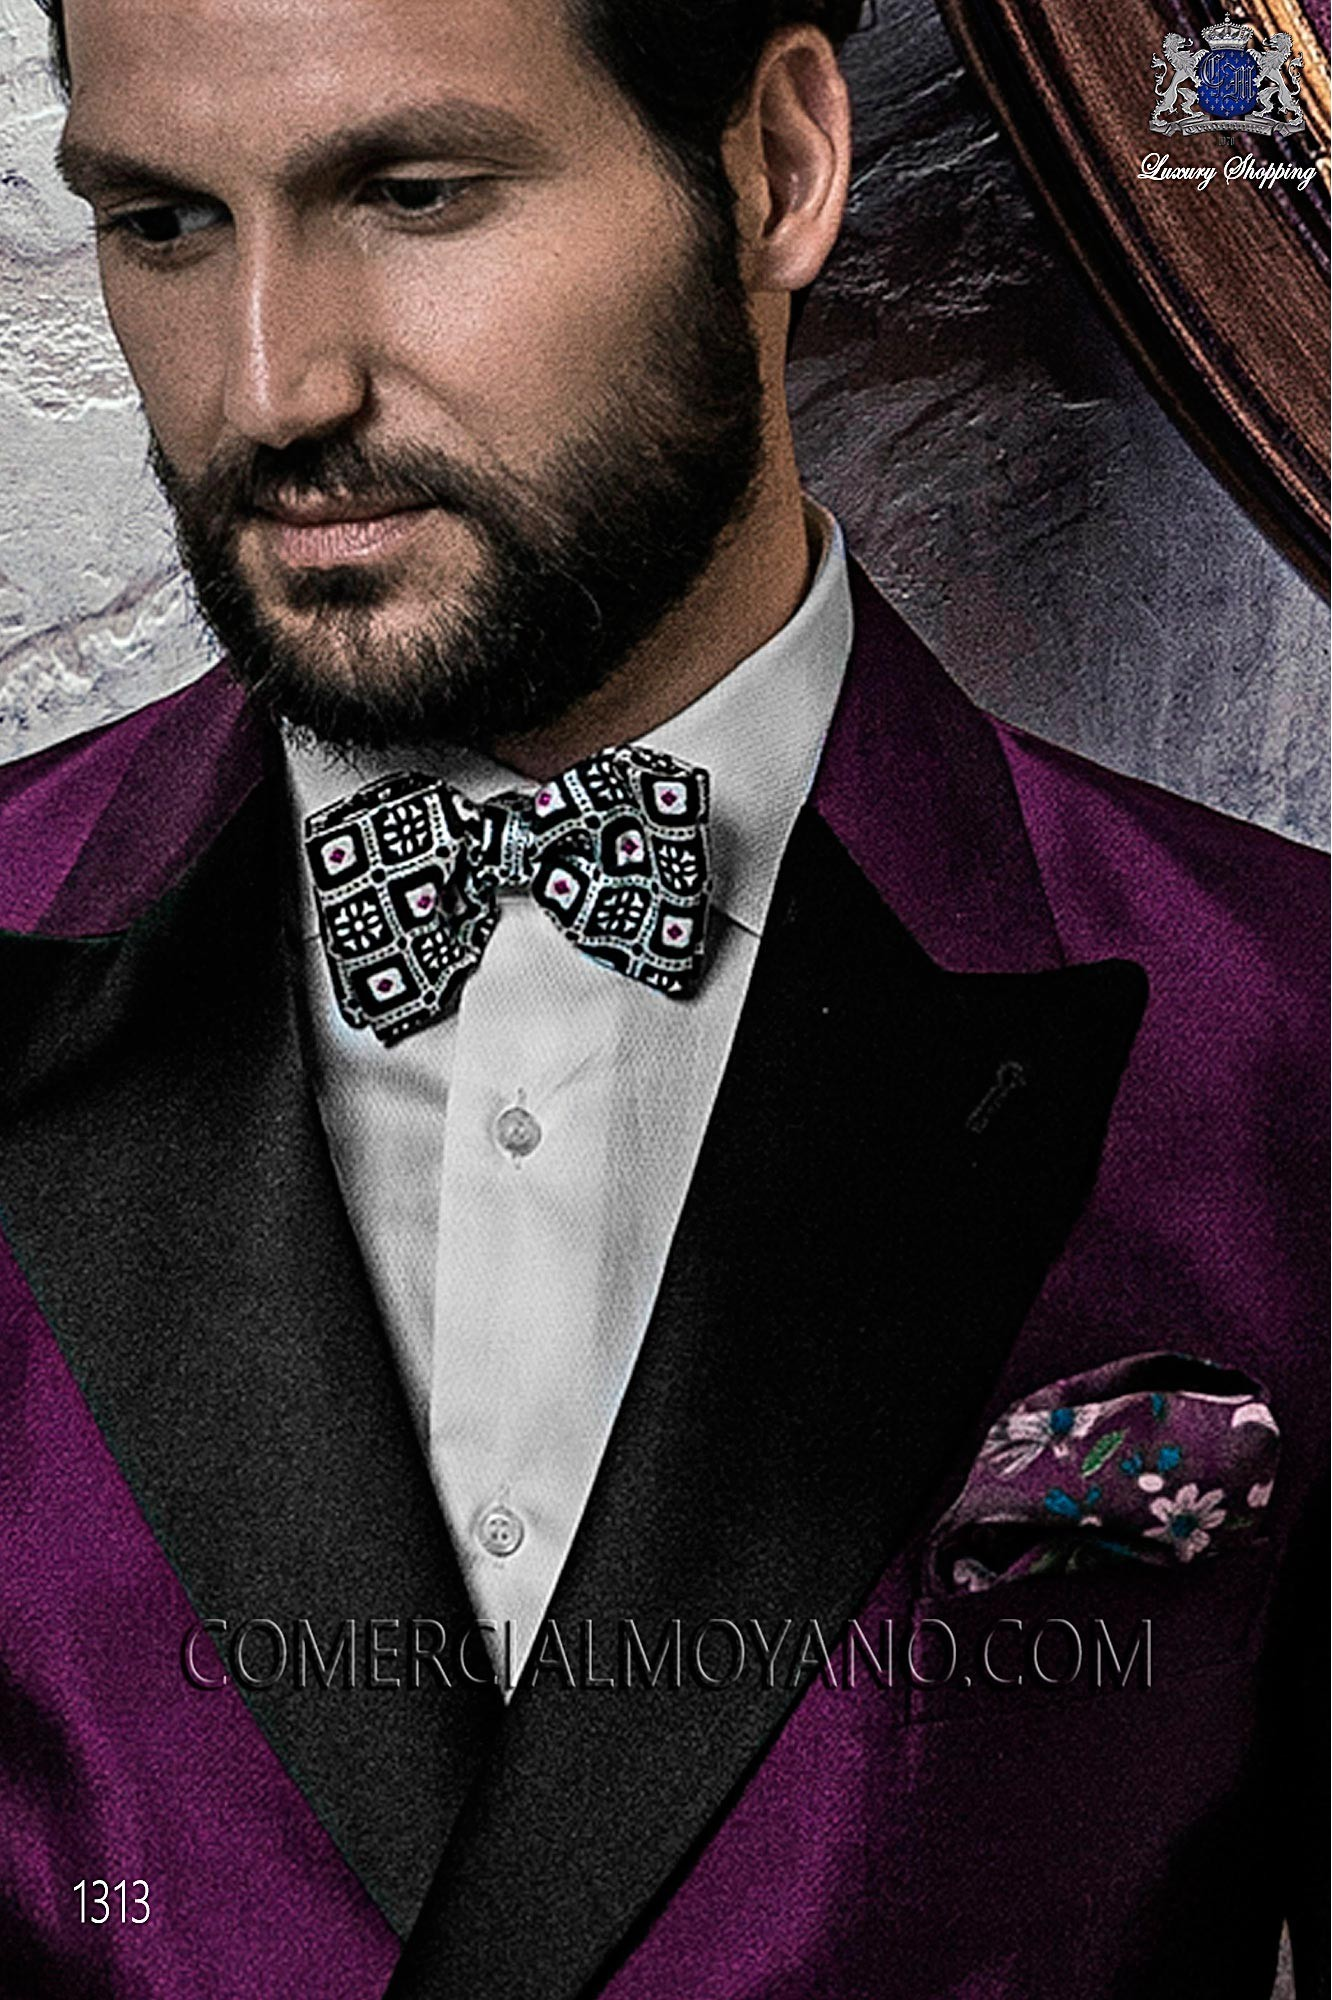 Italian blacktie Purple men wedding suit, model: 1313 Ottavio Nuccio Gala Black Tie Collection